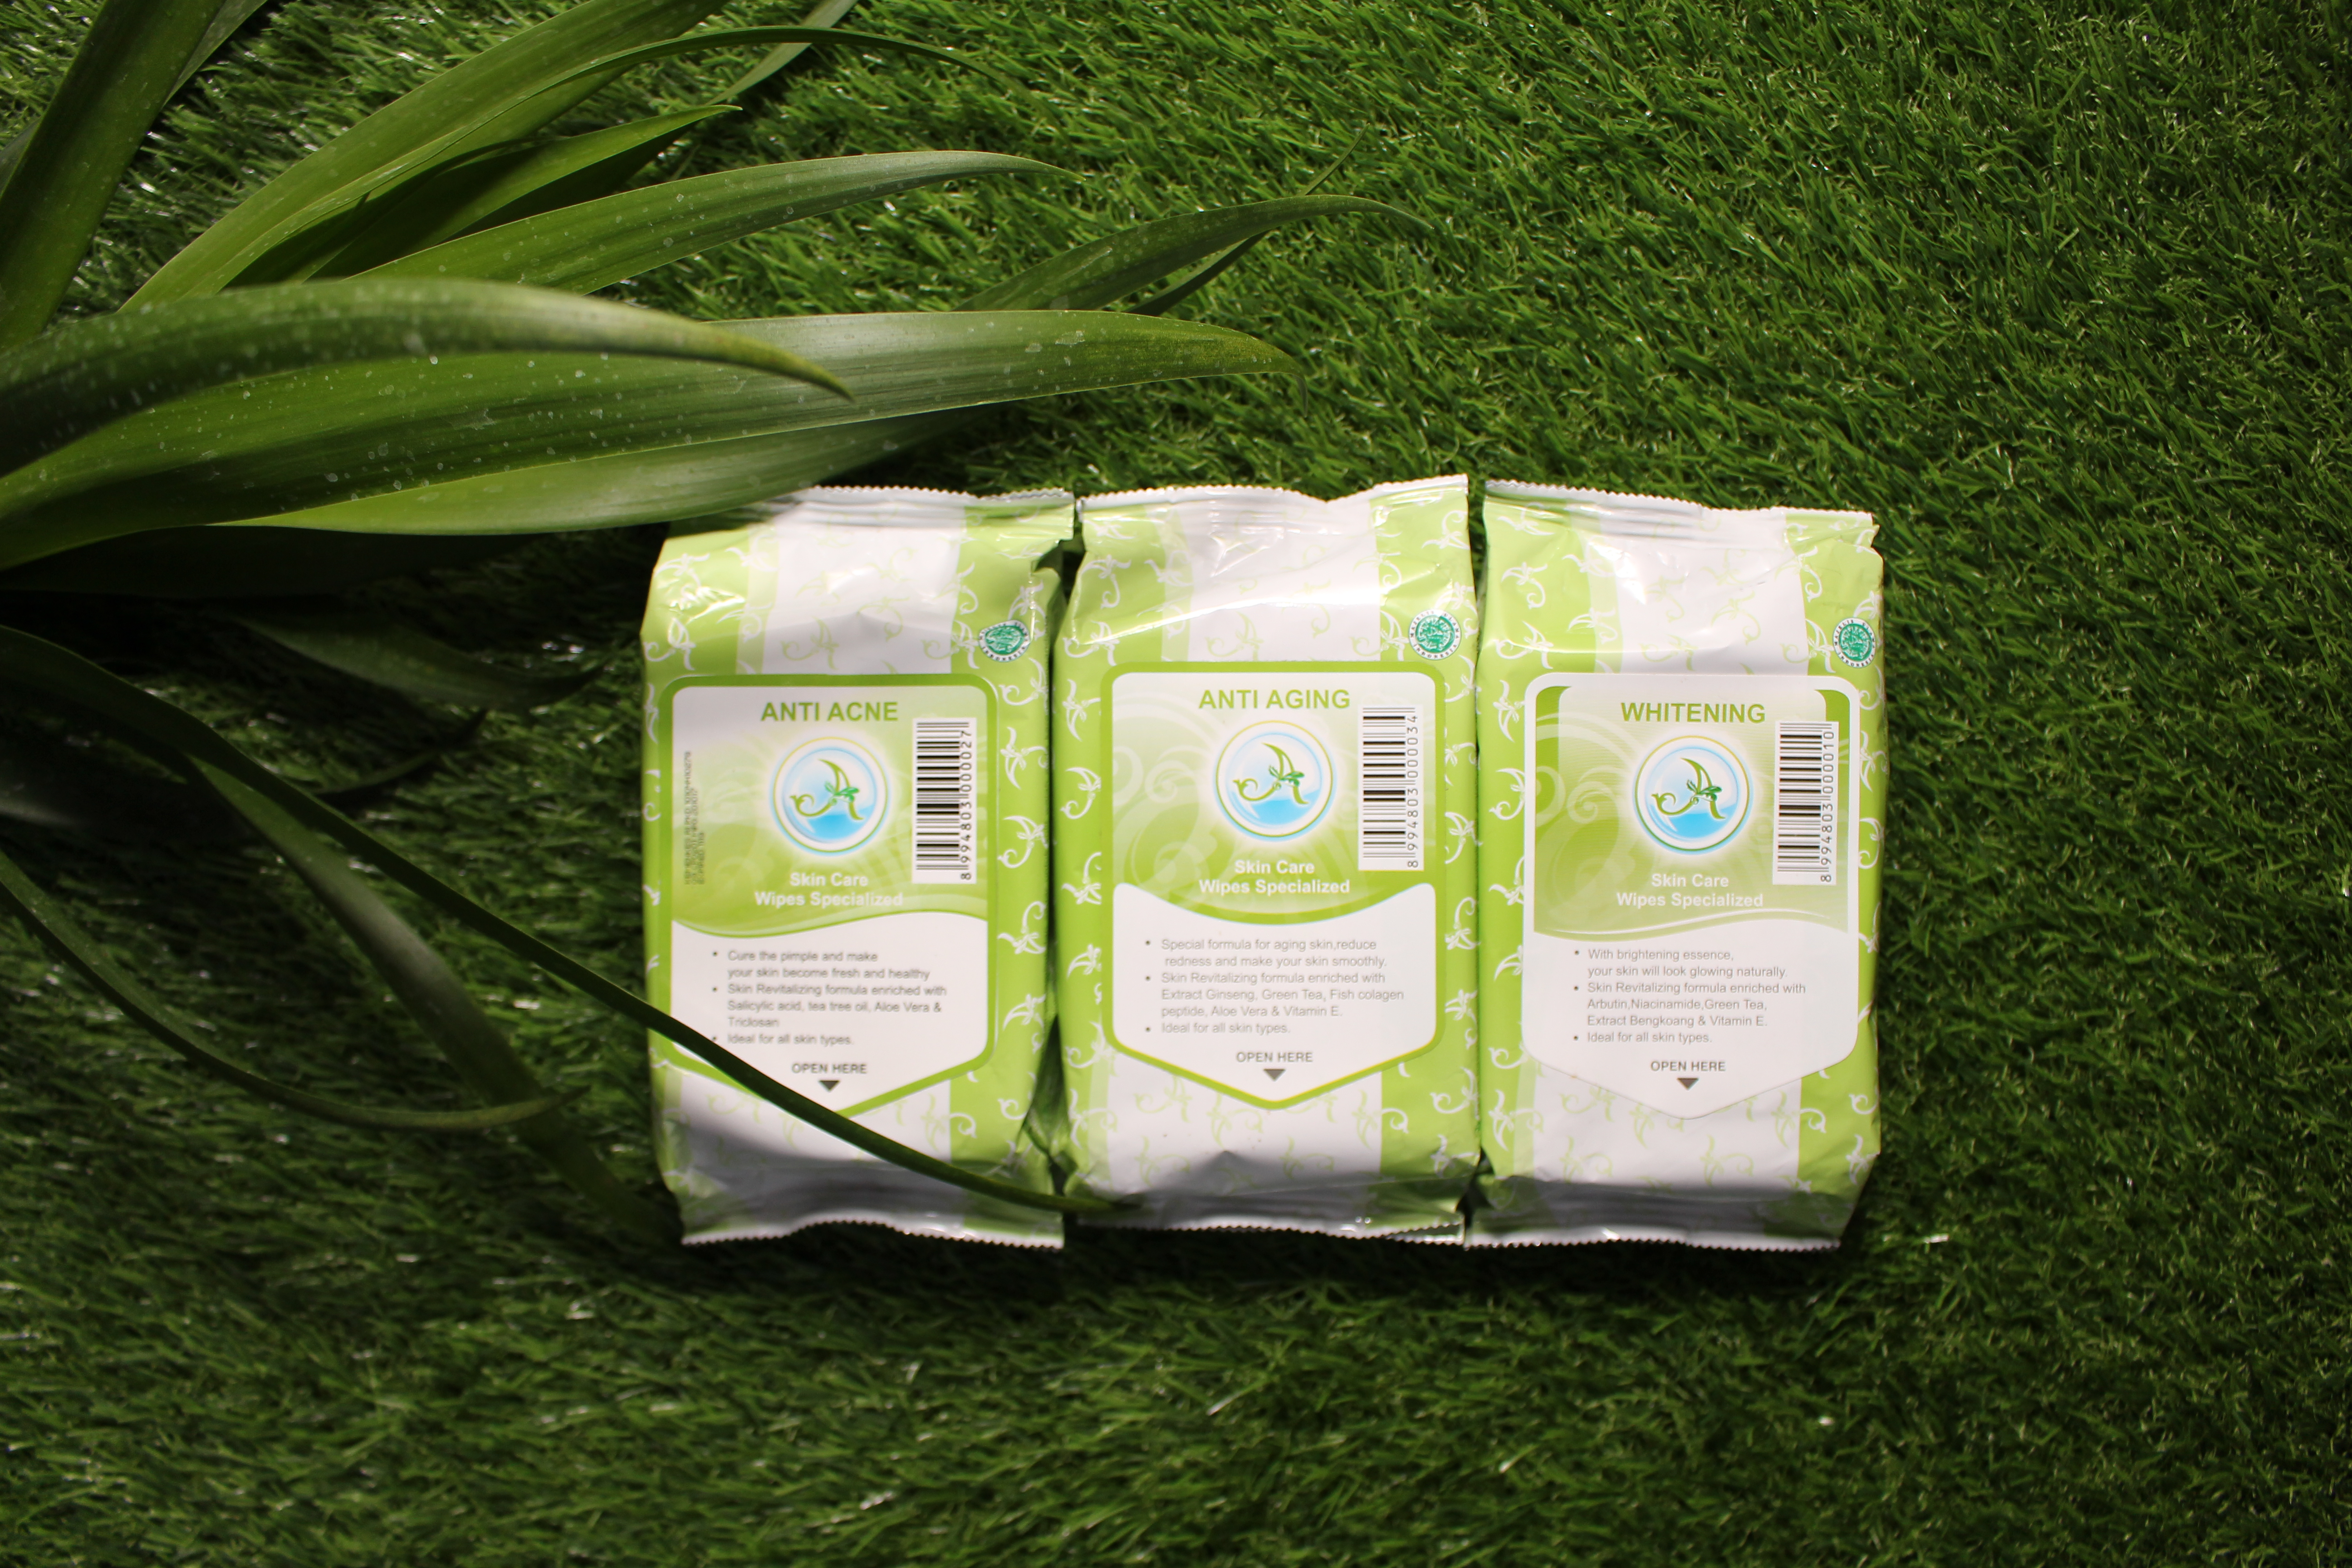 Whitening Skin Care Wipes Specialized